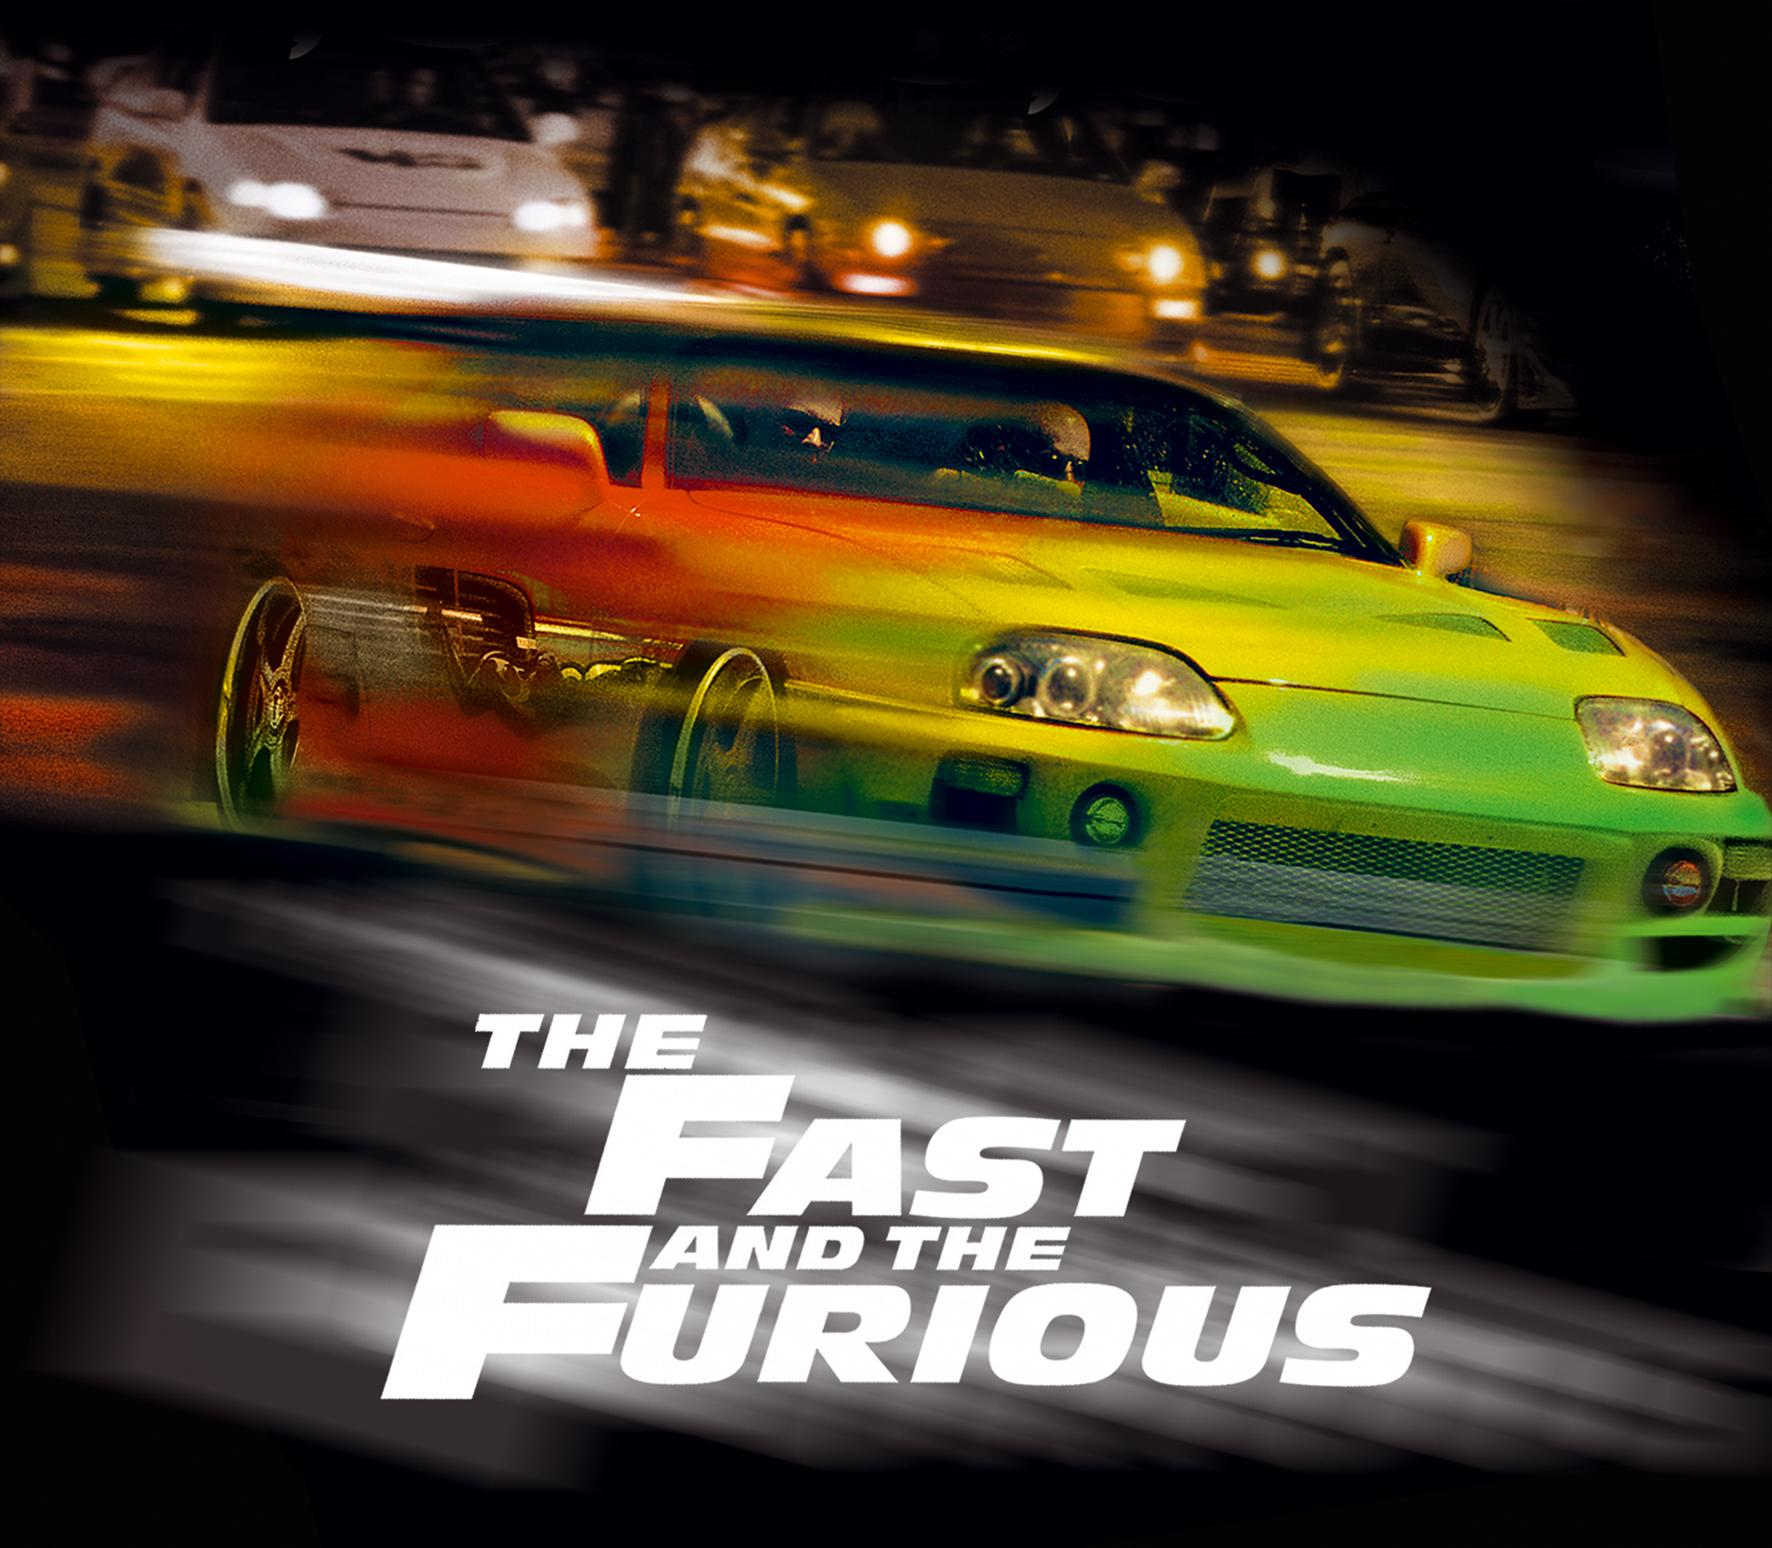 16 The Fast & Furious PSD Images